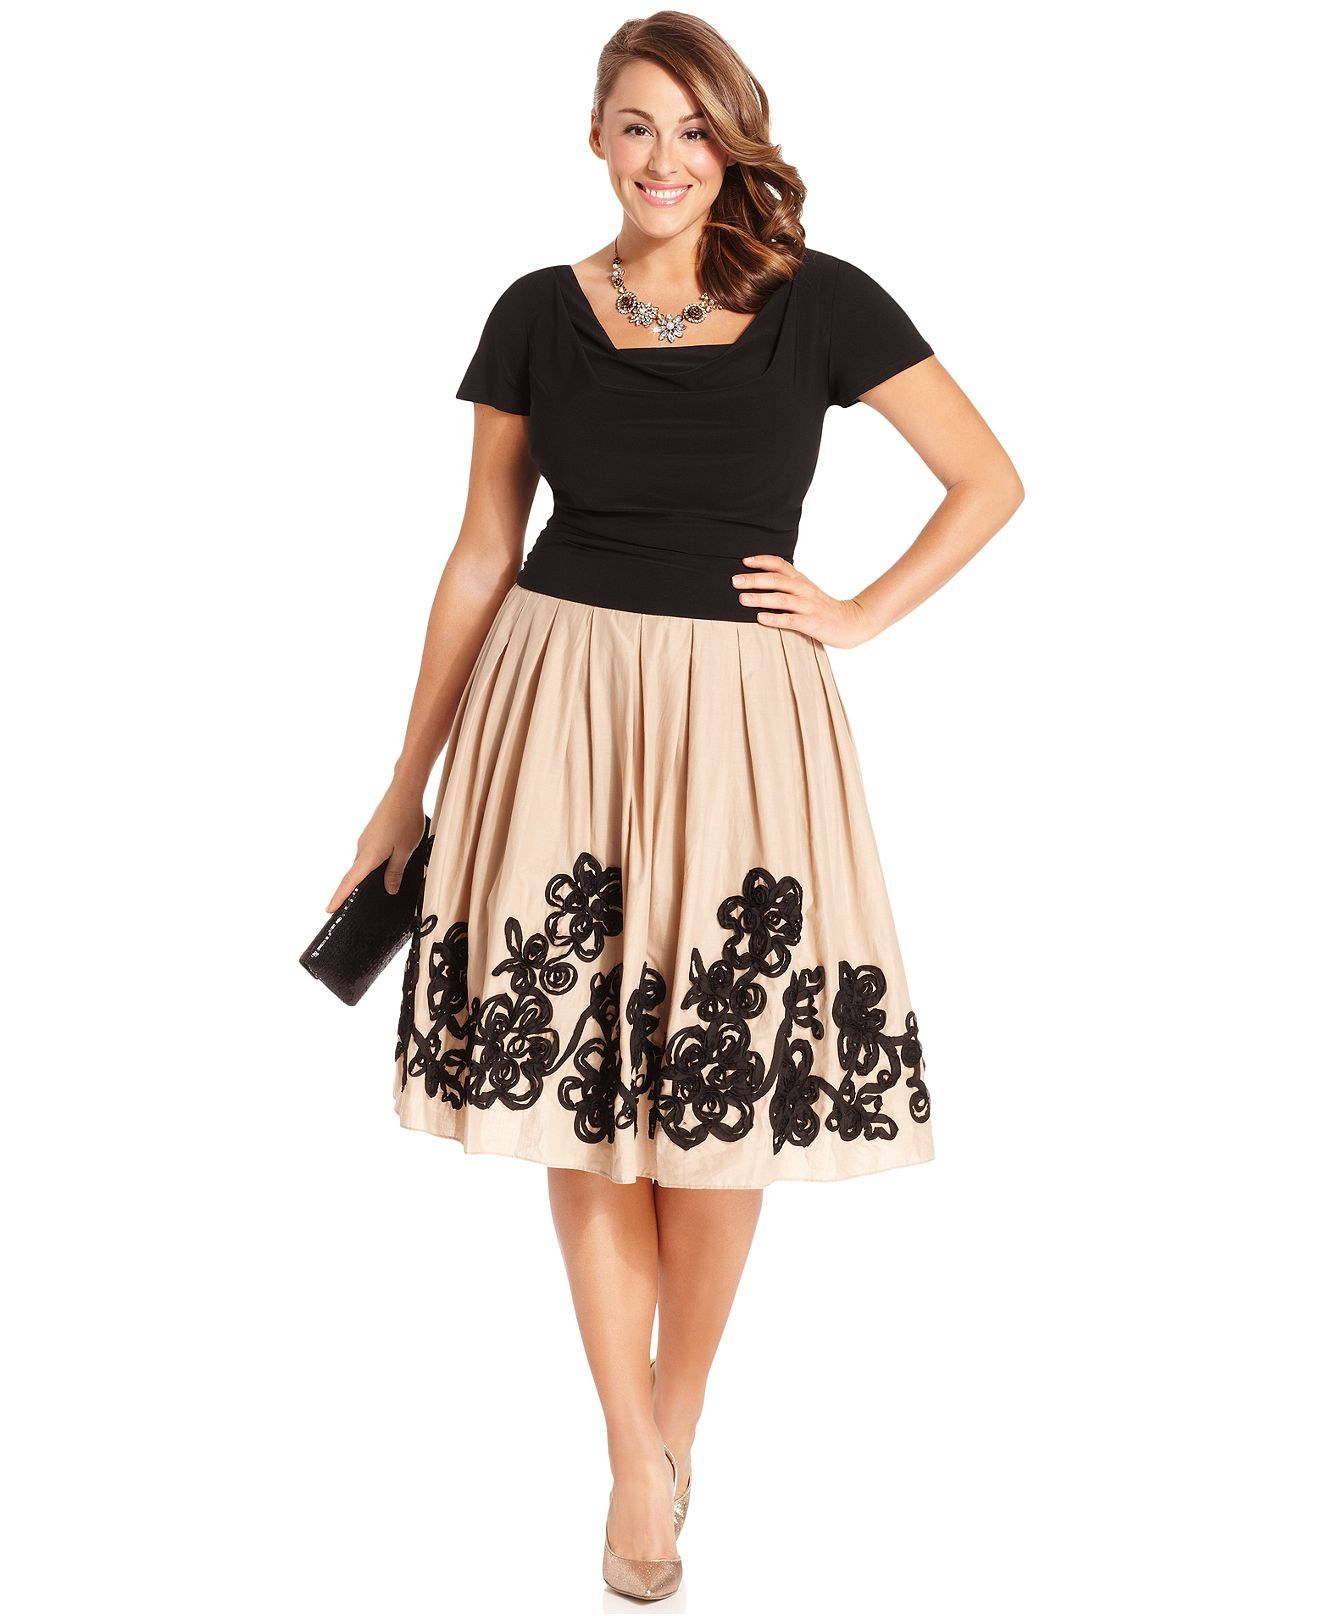 SL Fashions Plus Size Dress, Short-Sleeve Cowl-Neck Full-Skirt - Plus Size Dresses - Plus Sizes - Macy's